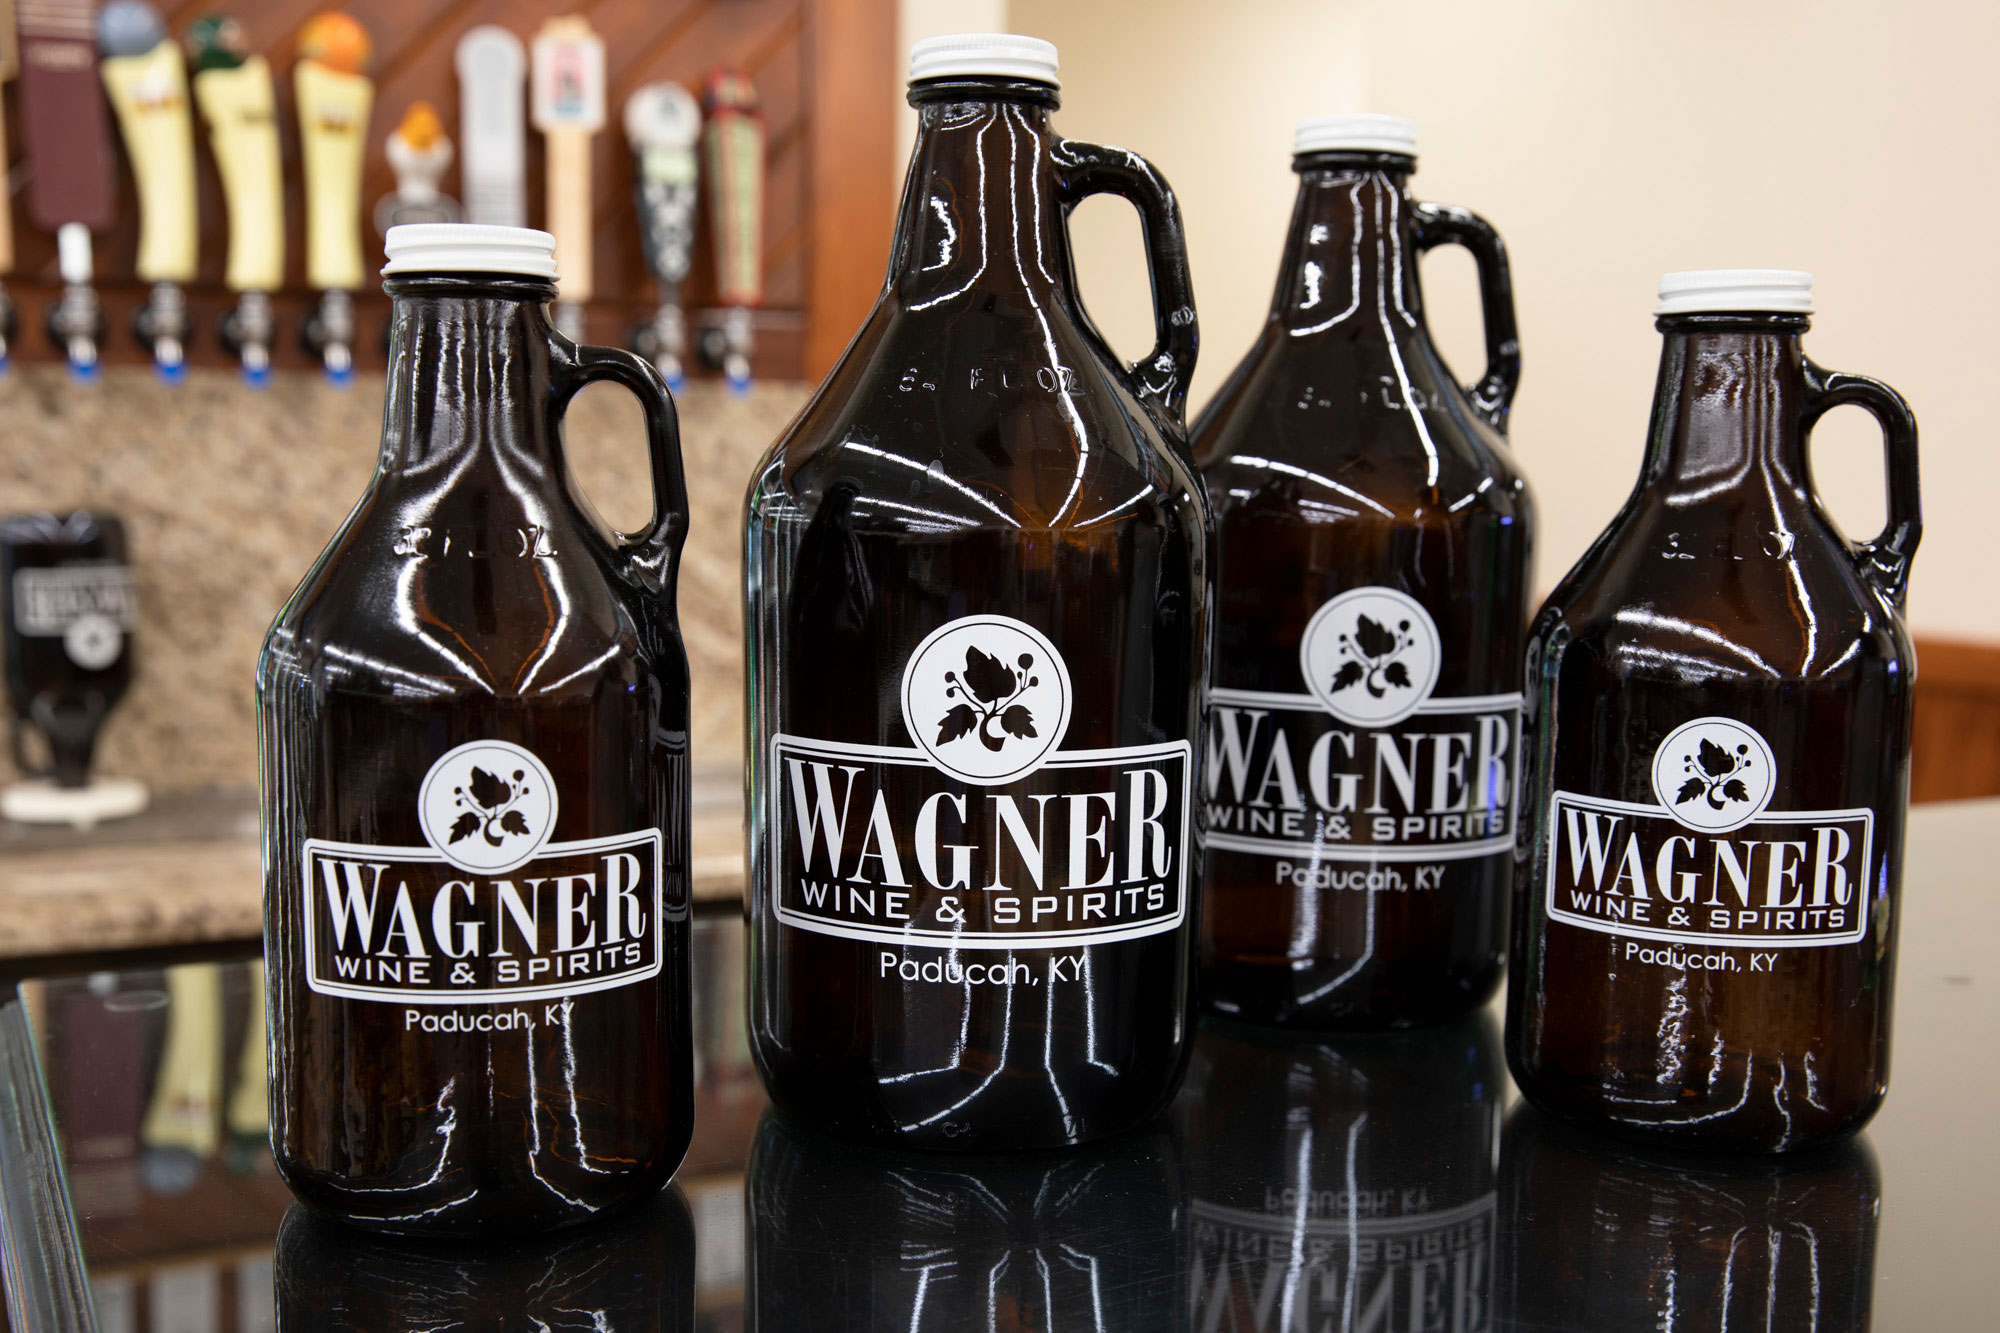 Wagners growlers lined up in front of the craft beer taps